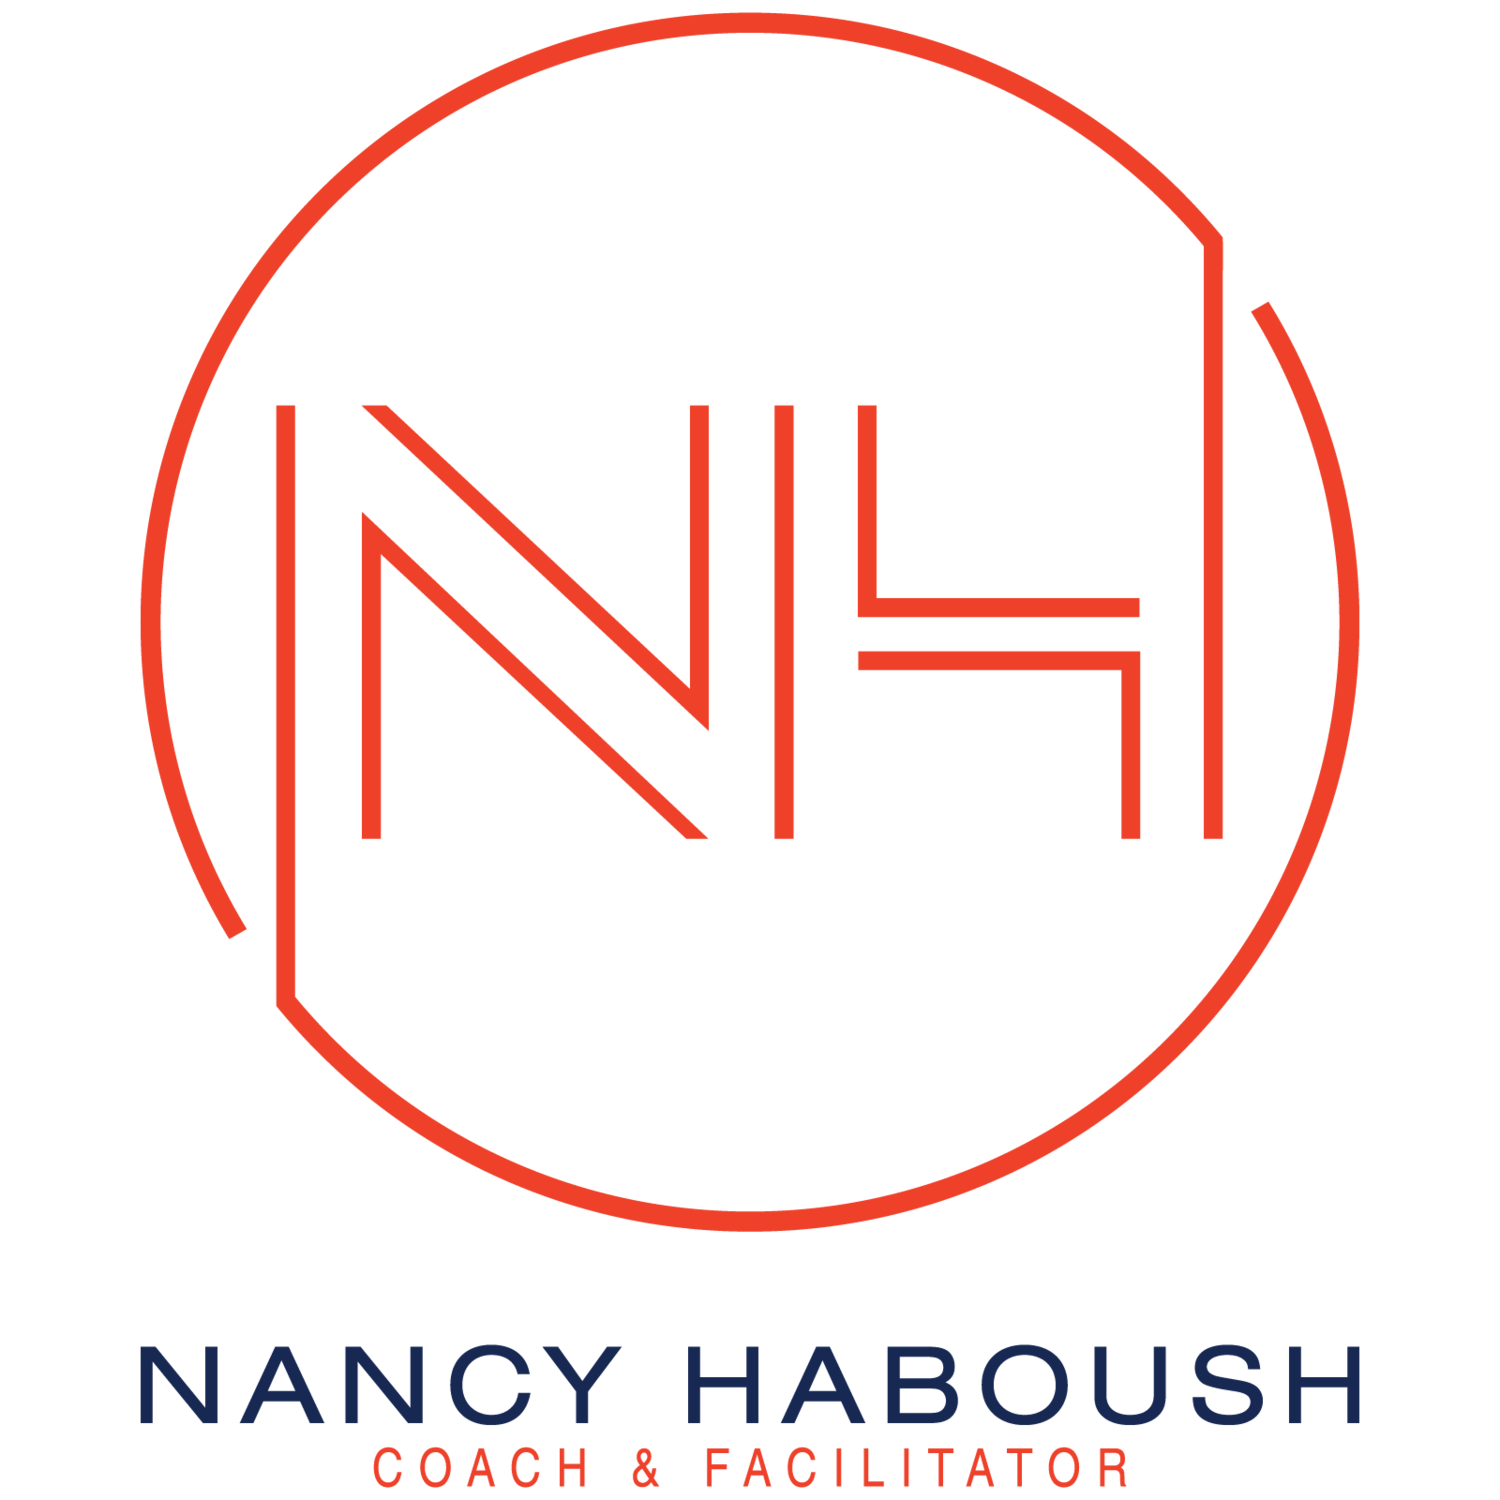 Nancy Haboush - Coach & Facilitator